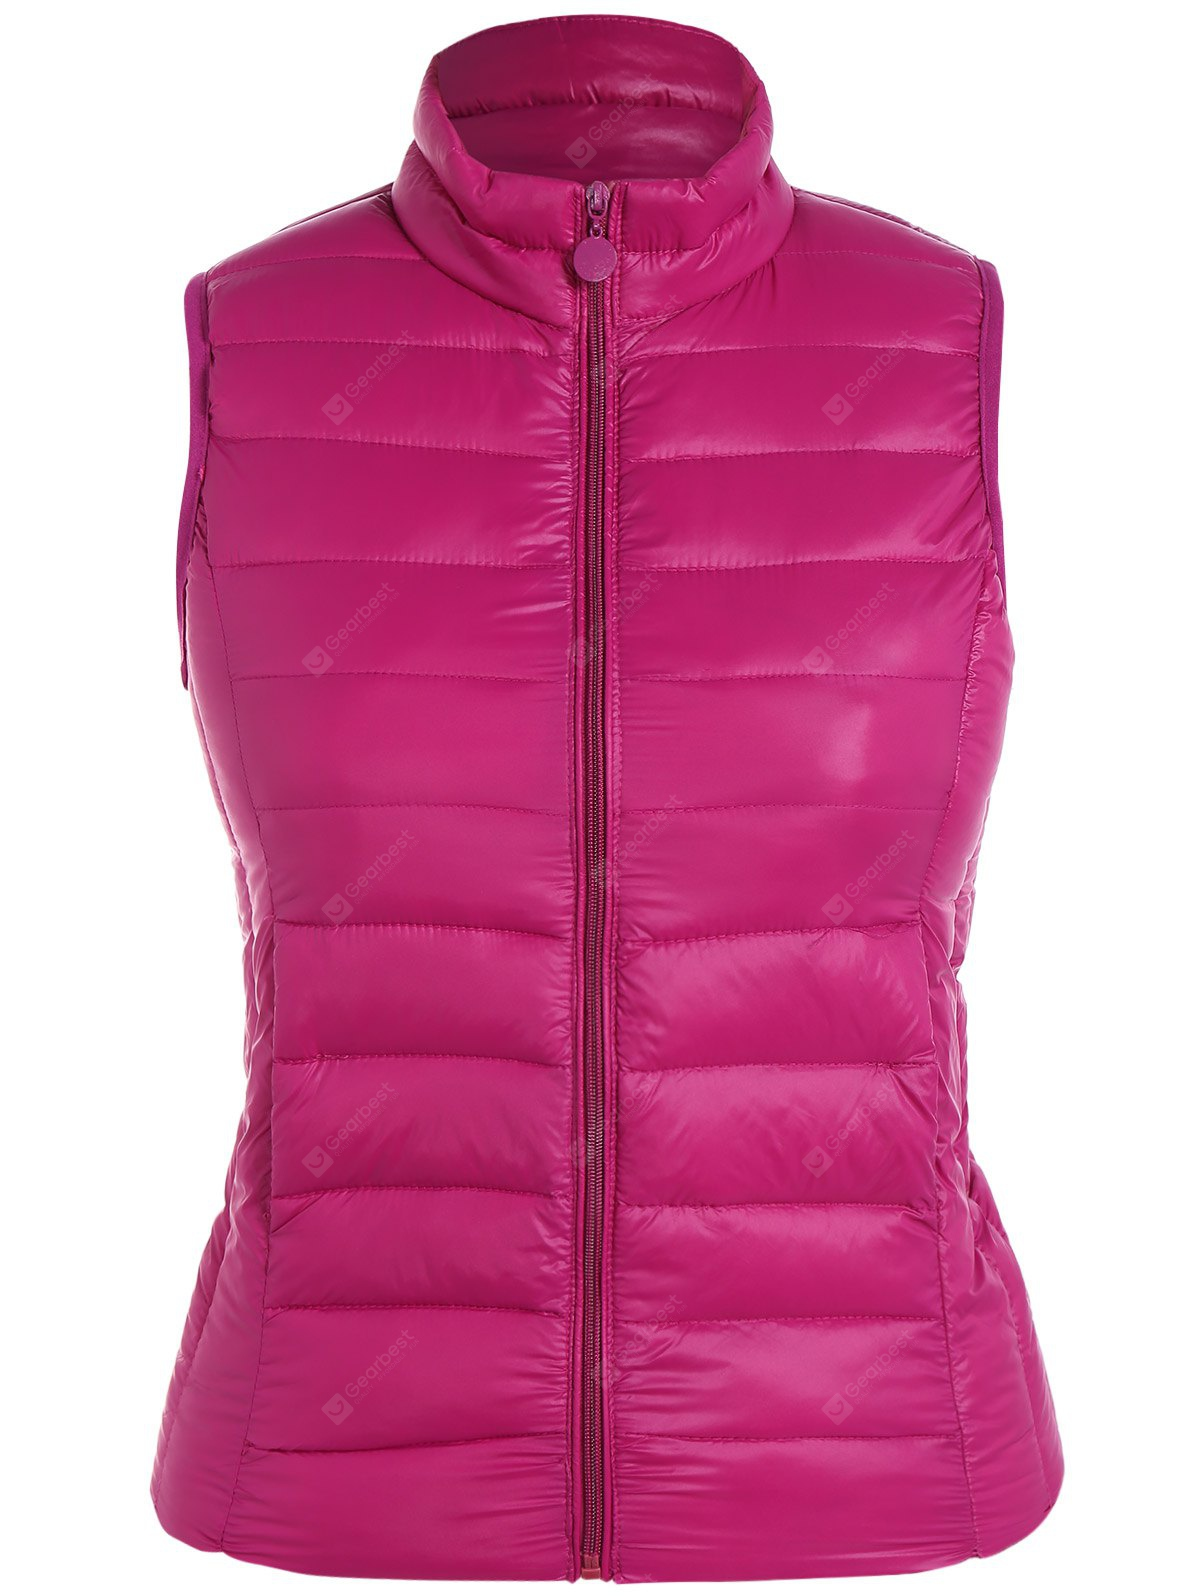 Plus Size Zip Up Quilted Waistcoat